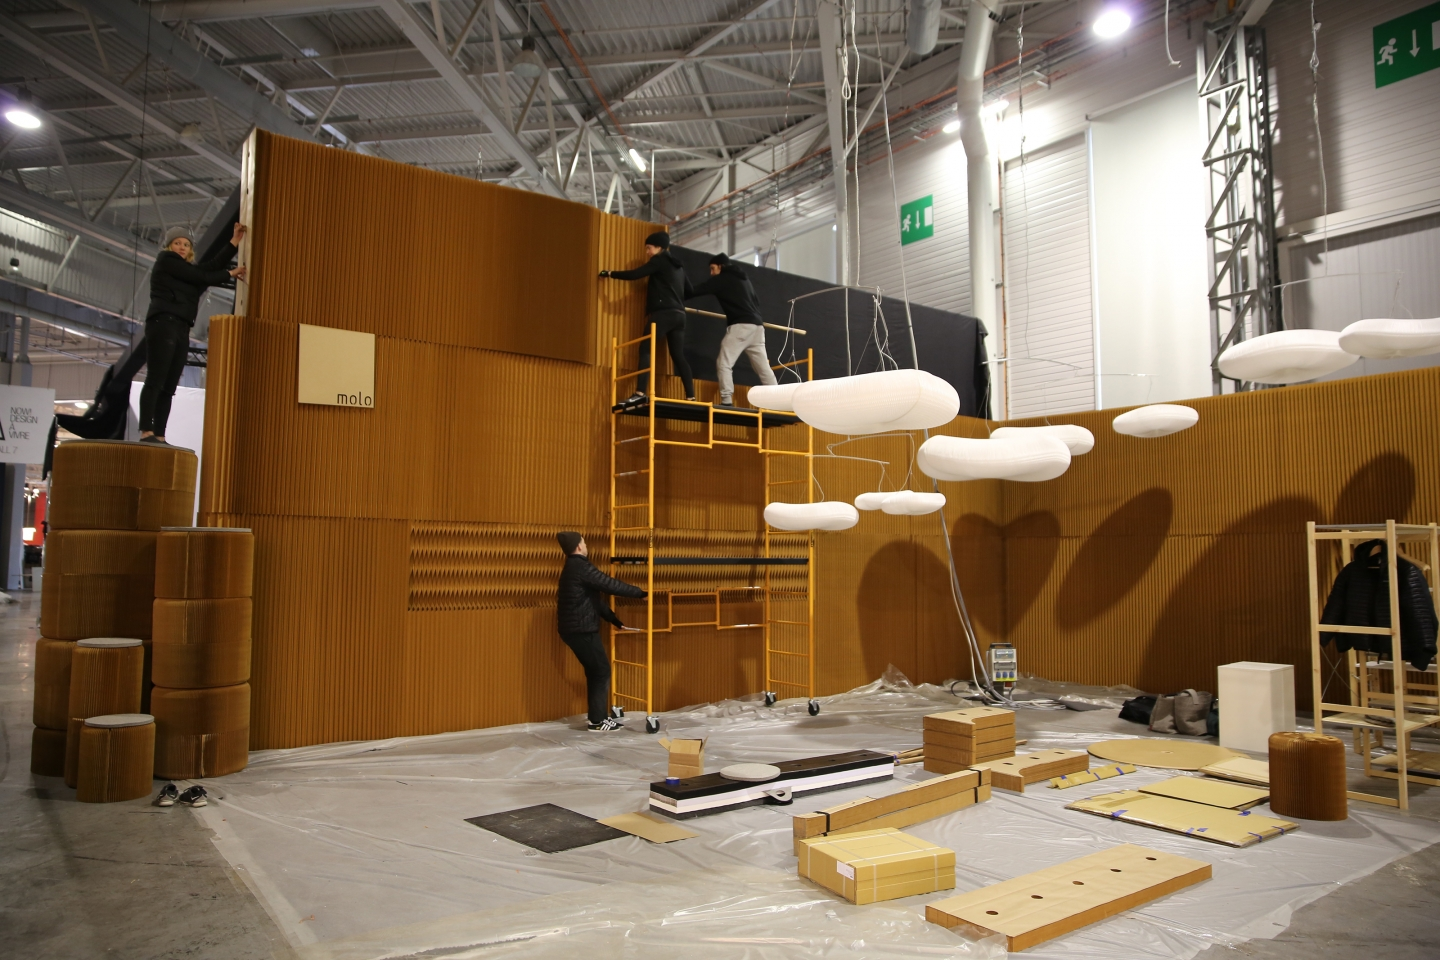 setting up the molo installation at Maison & Objet 2016 - modular paper furniture by molo